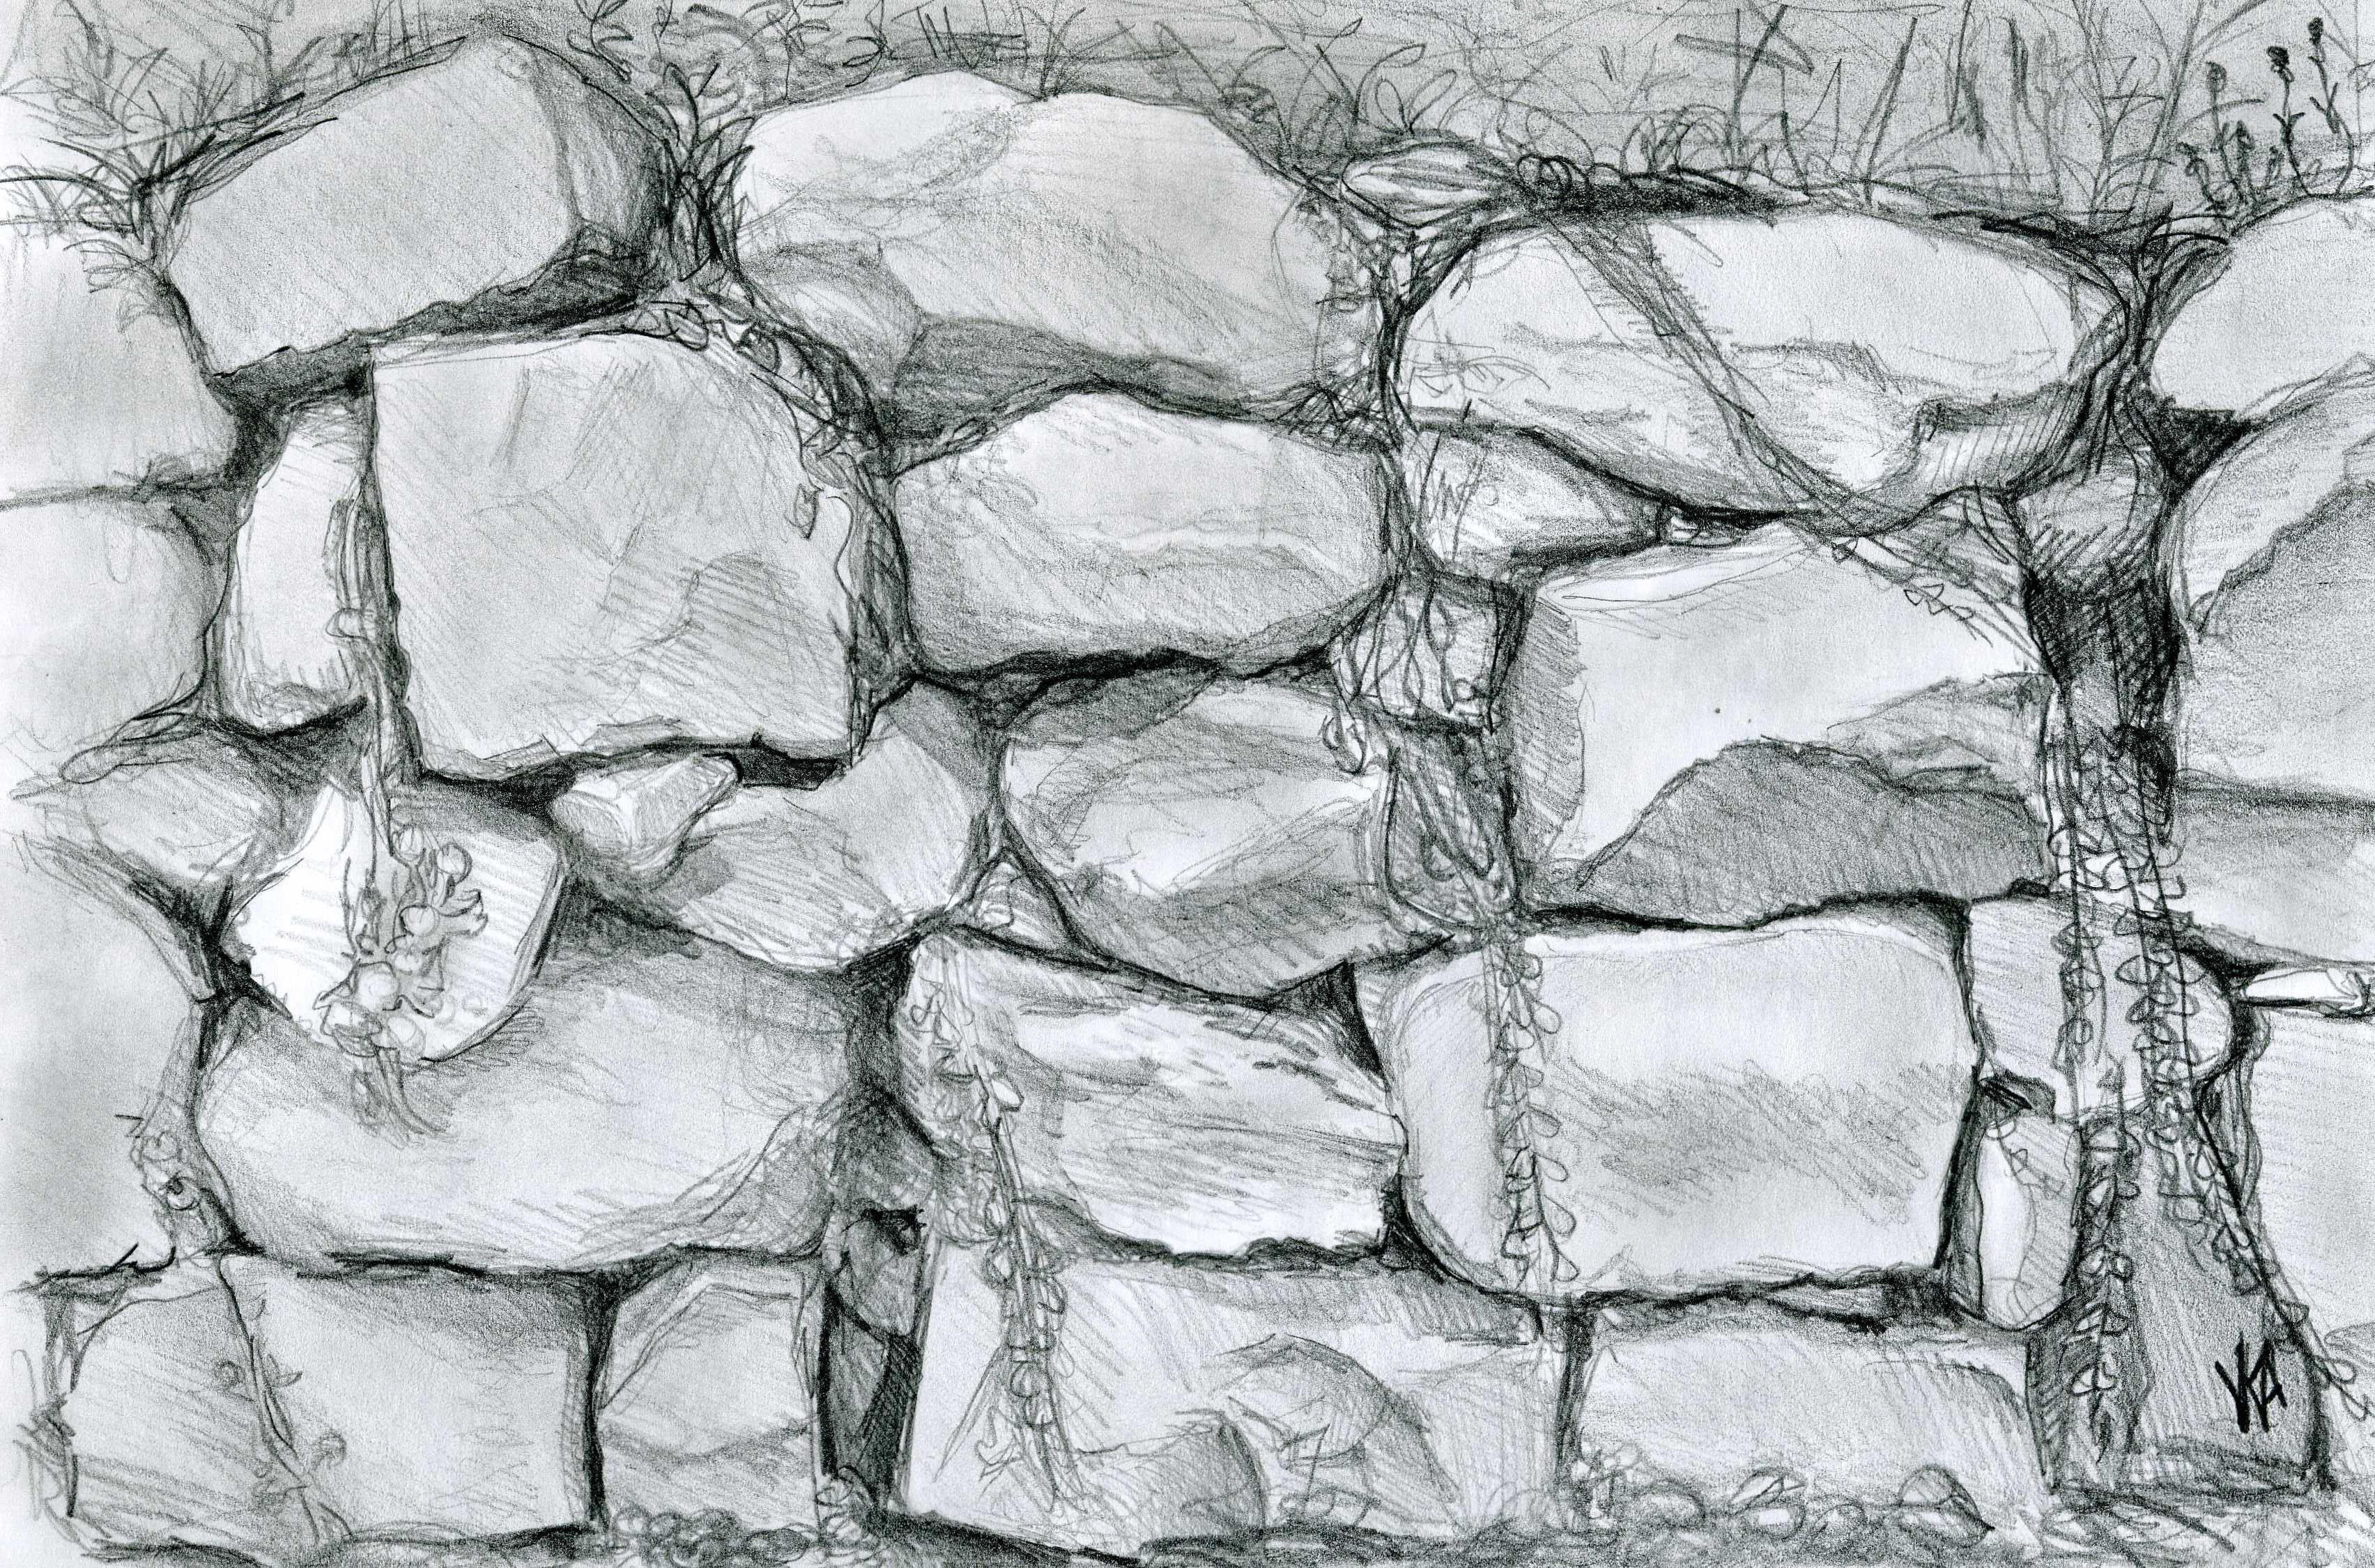 Pin By Paf On Drawing Material Drawing Rocks Wall Drawing